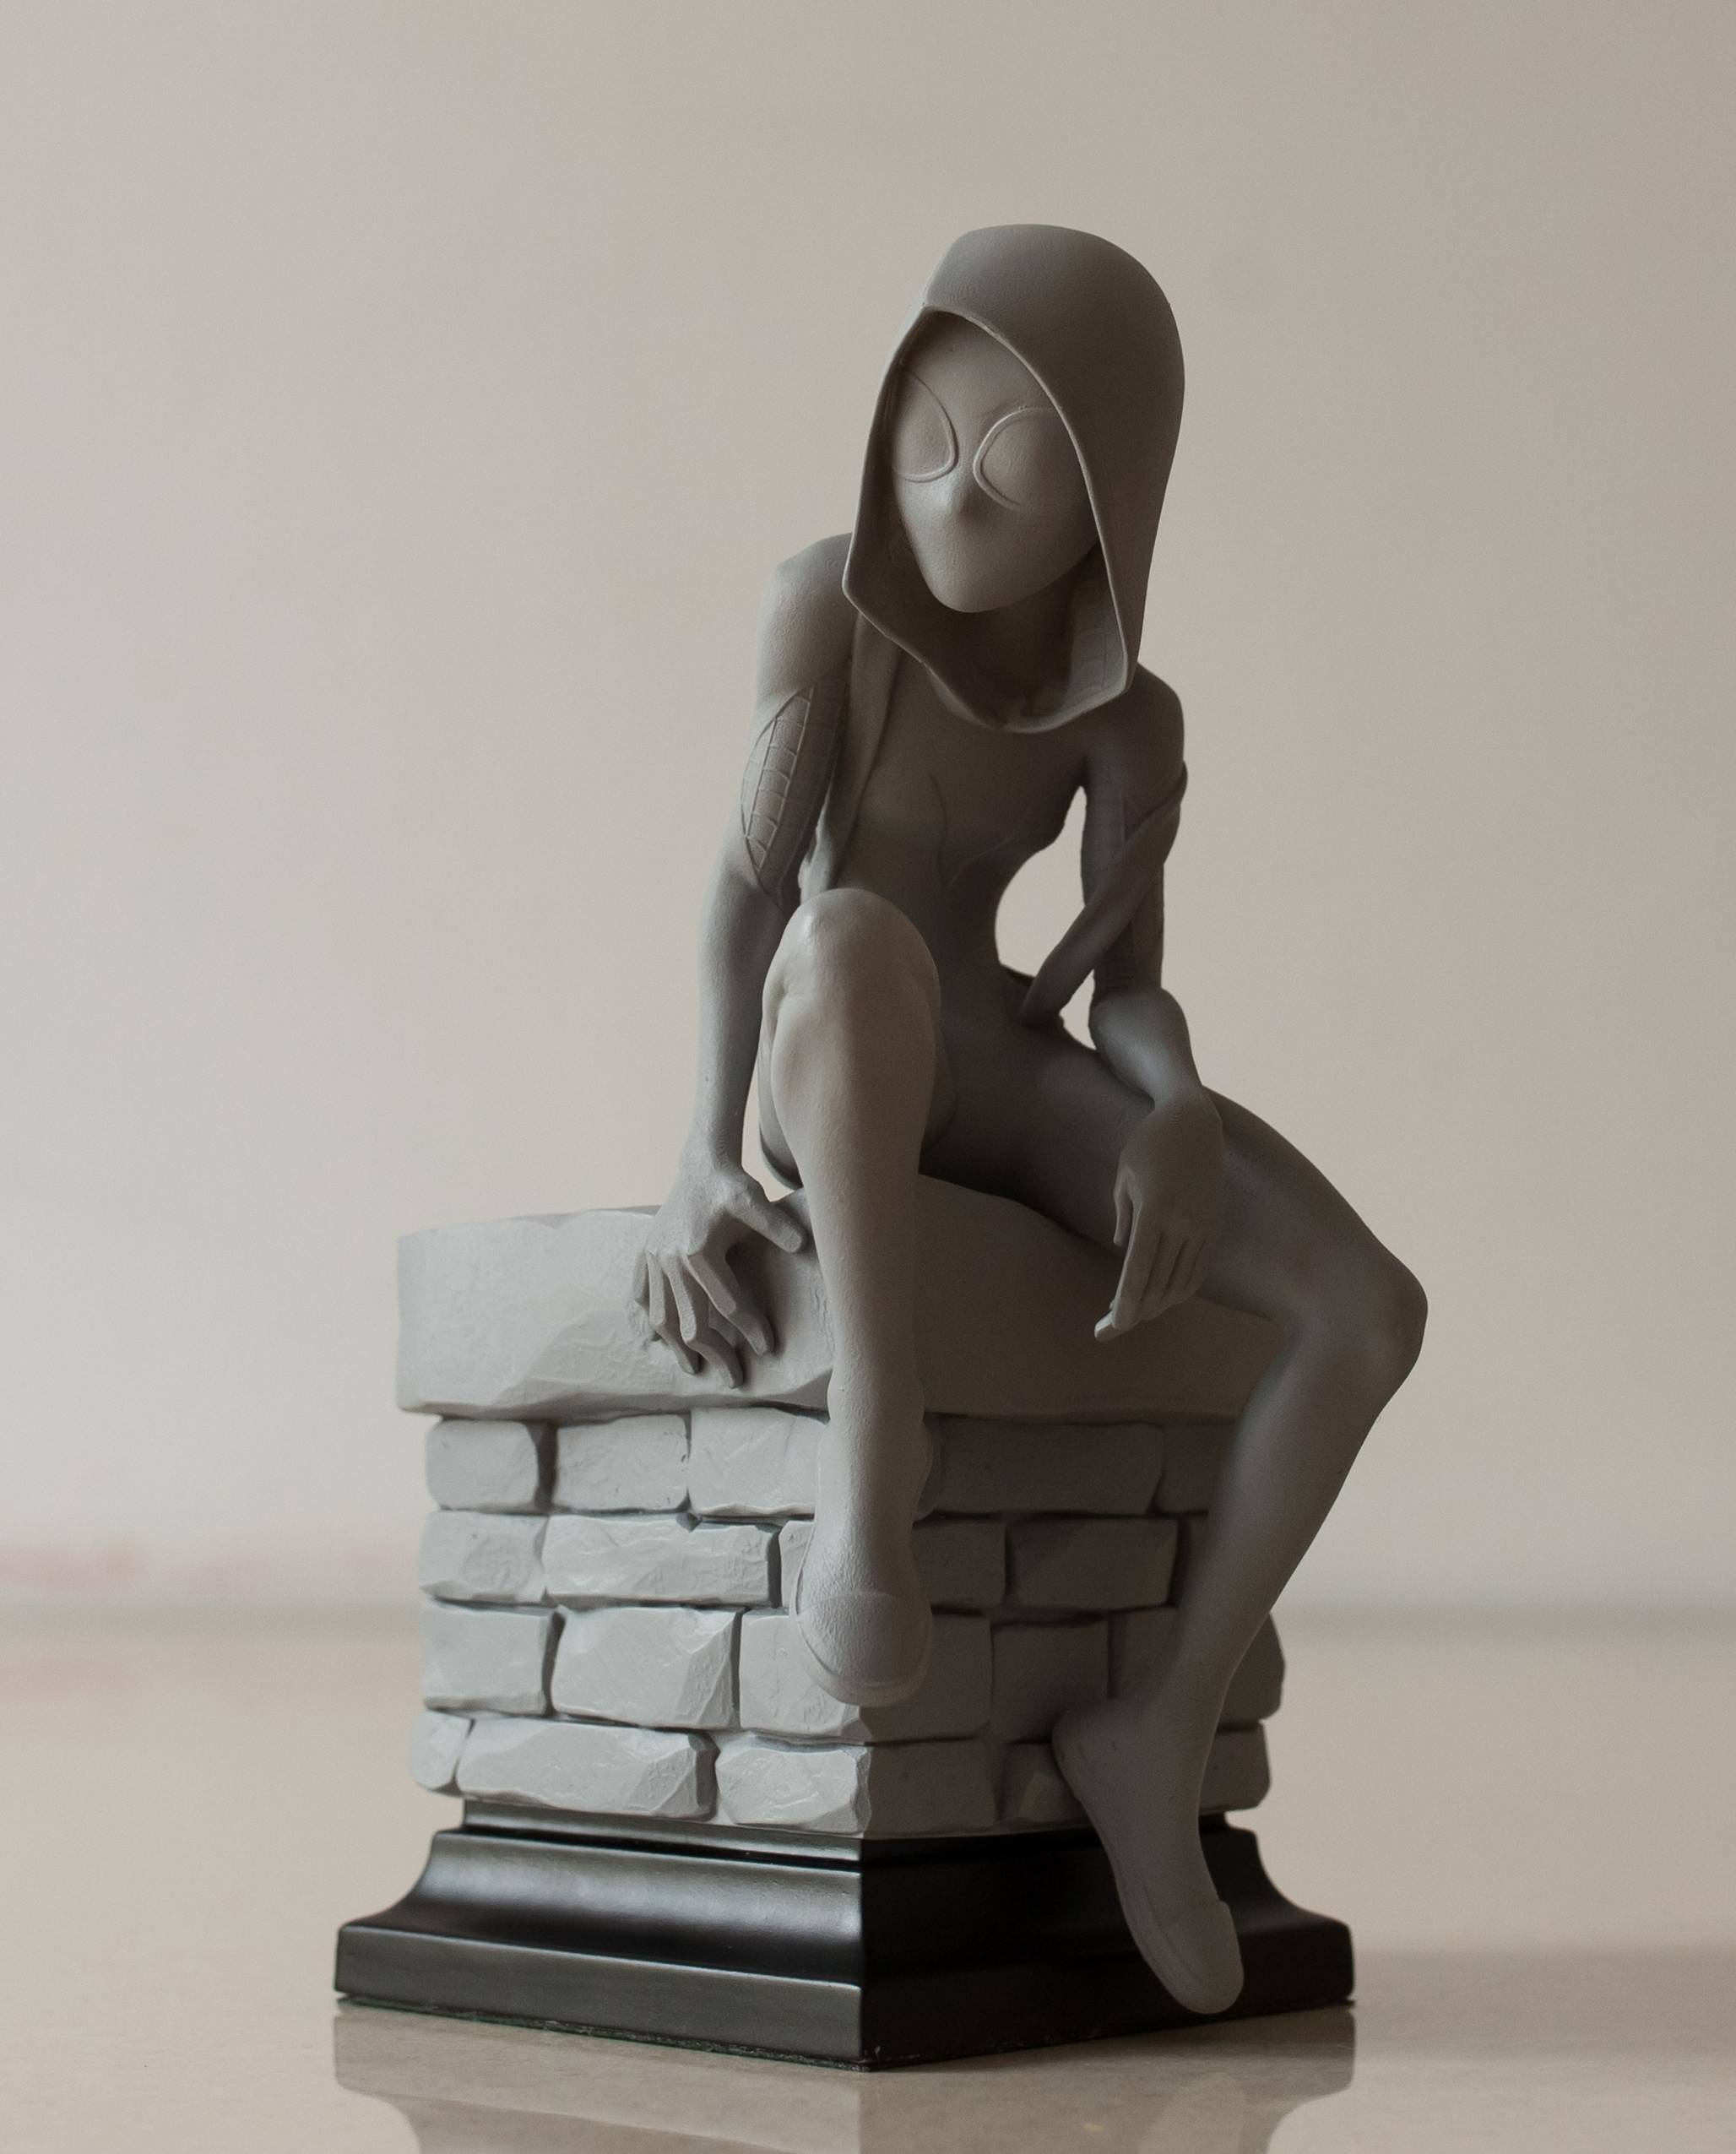 Spider-Gwen + Other Models Free 3D Print Files – 3D Printer Reviews - Free 3D Printable Models